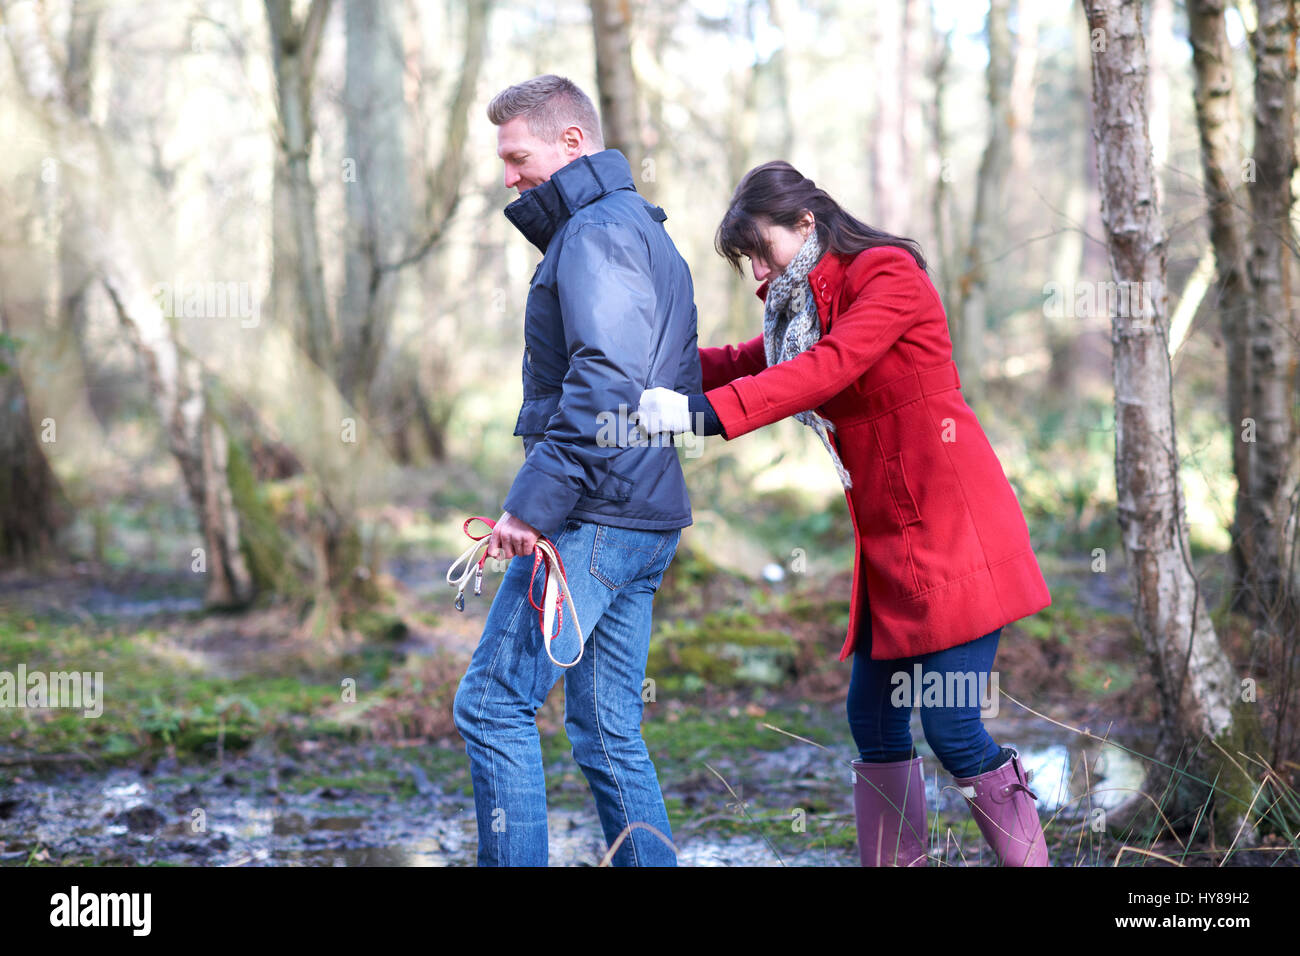 A young couple navigate the mud on a walk in the woods - Stock Image